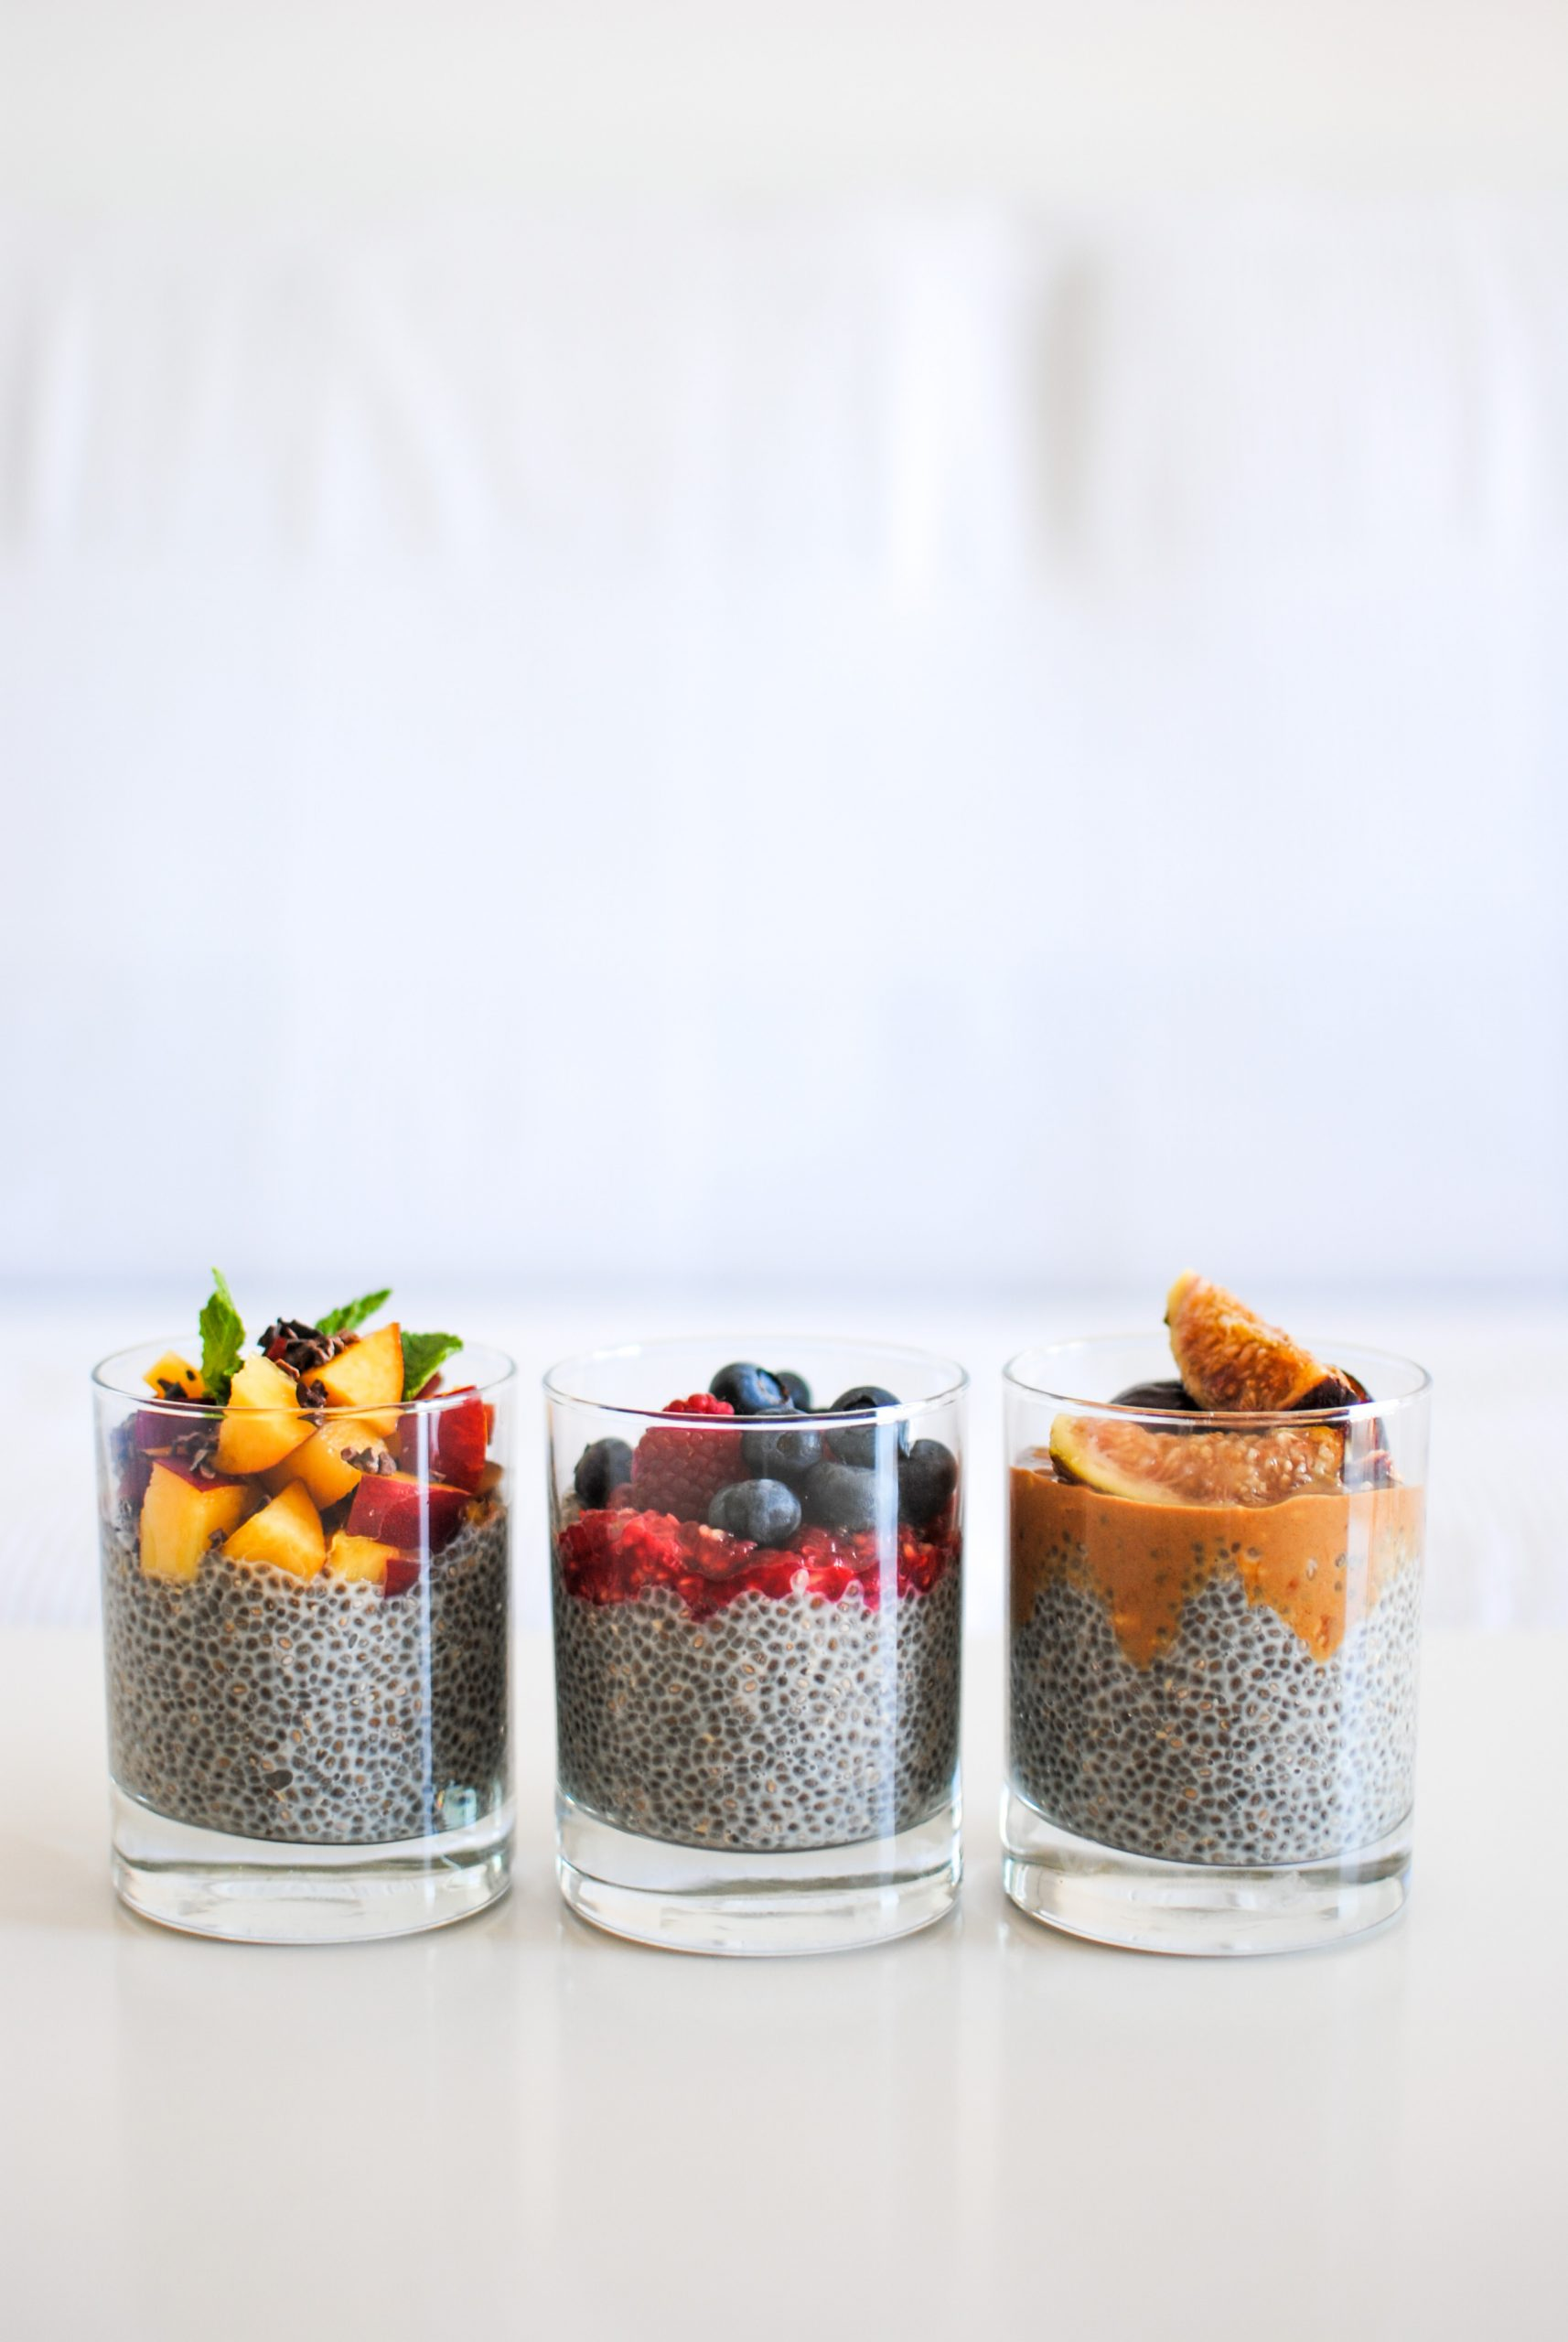 chia pudding toppings | please consider | joana limao